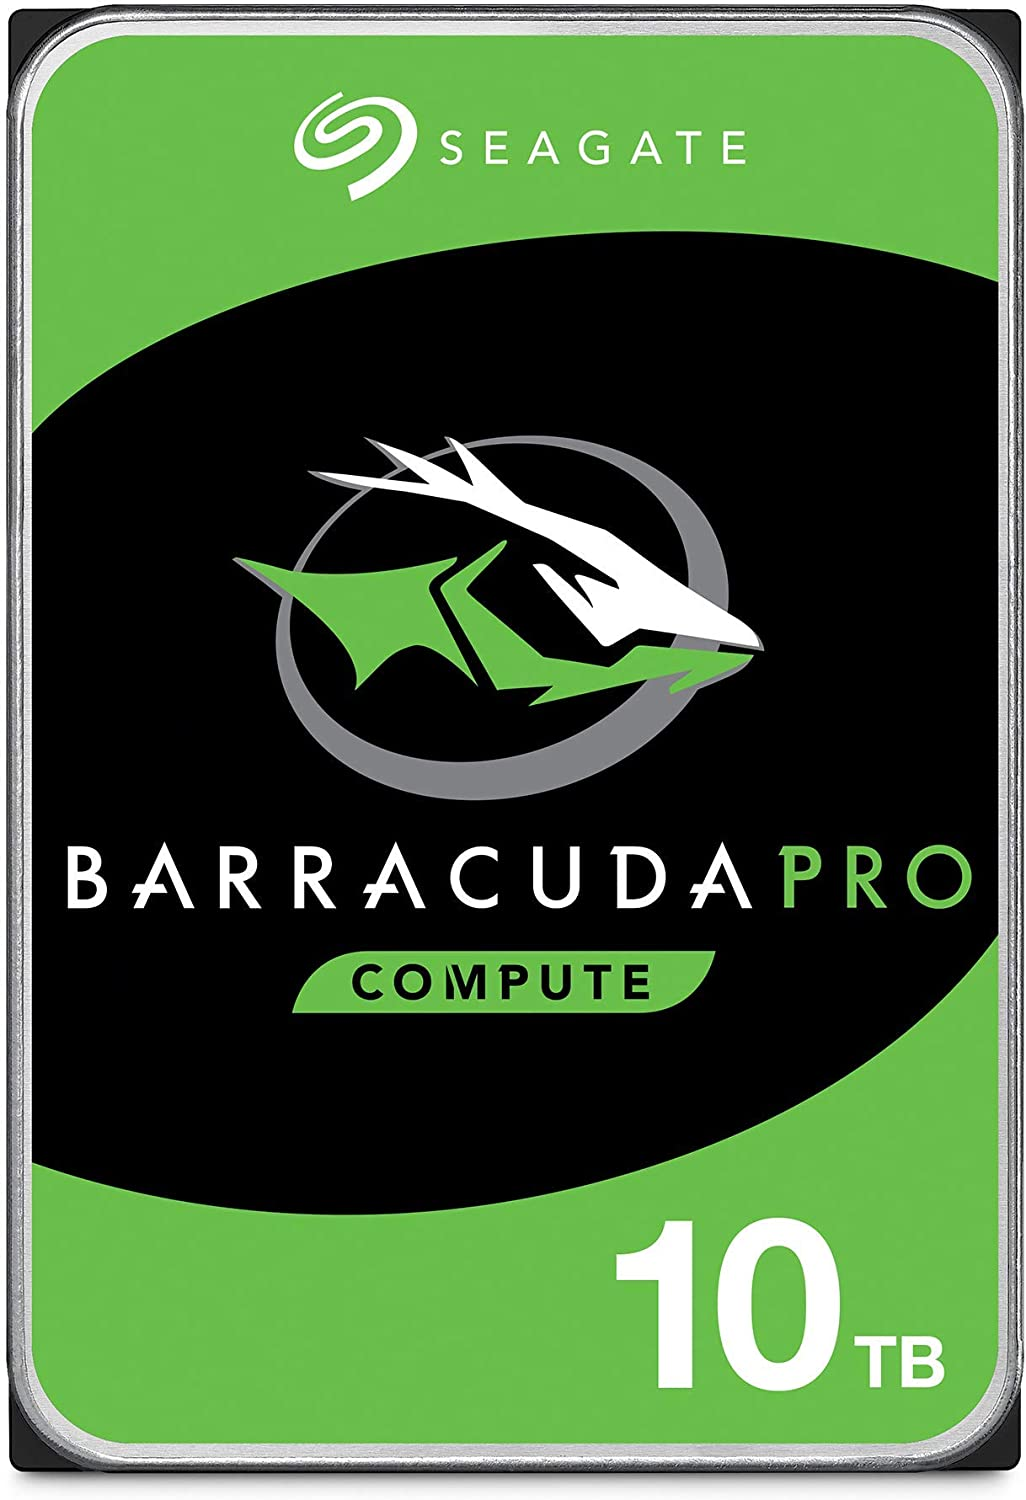 Seagate BarraCuda Pro SATA HDD 10TB 7200RPM 6Gb/s 256MB Cache 3.5-Inch Internal Hard Drive for PC Desktop Computers System All in One Home Servers DAS (ST10000DM0004) (Renewed)